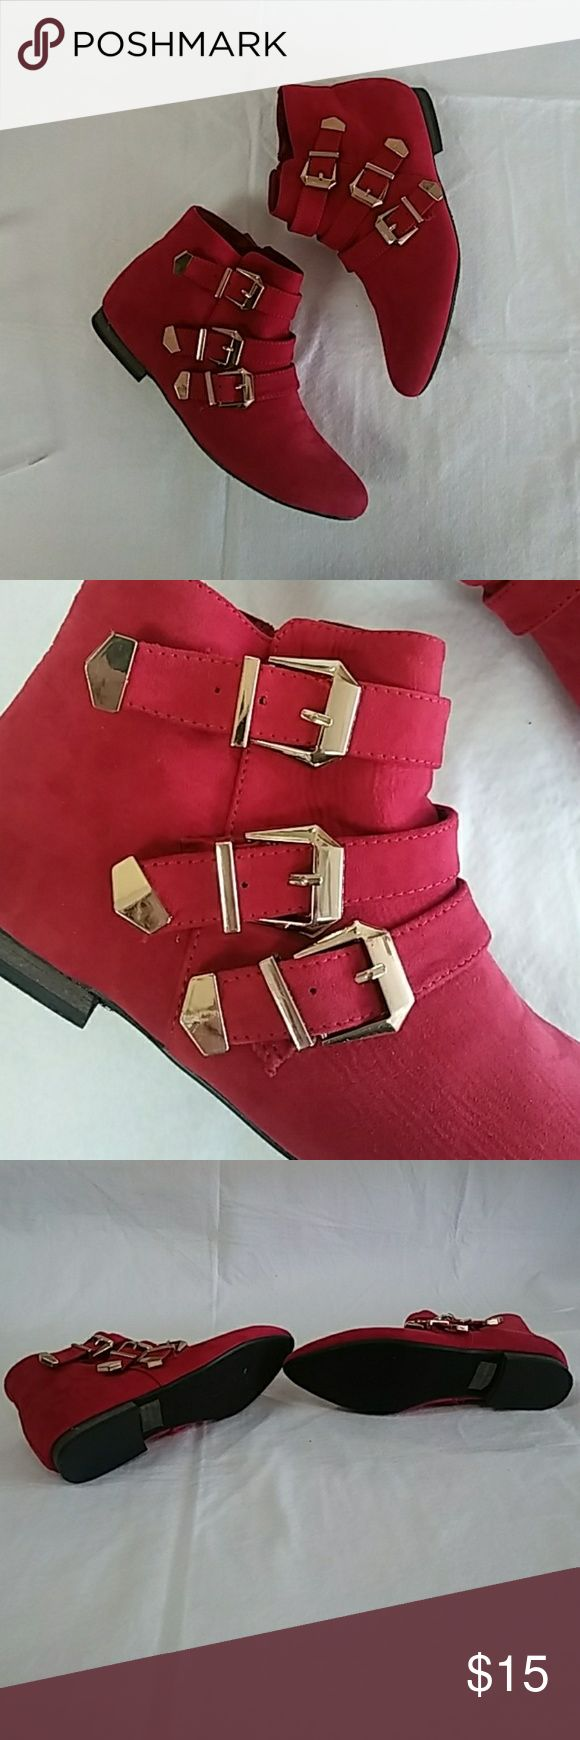 ??3 left!?? Breckelles red suede buckle ankle boot Triple gold buckle  Zipper  Red suede  Original price $29.99 Posh special $15 firm (no other offers) 1.5 centimeter heel  3 sizes left so why not put on sale right? Enjoy ?? Breckelles Shoes Ankle Boots & Booties